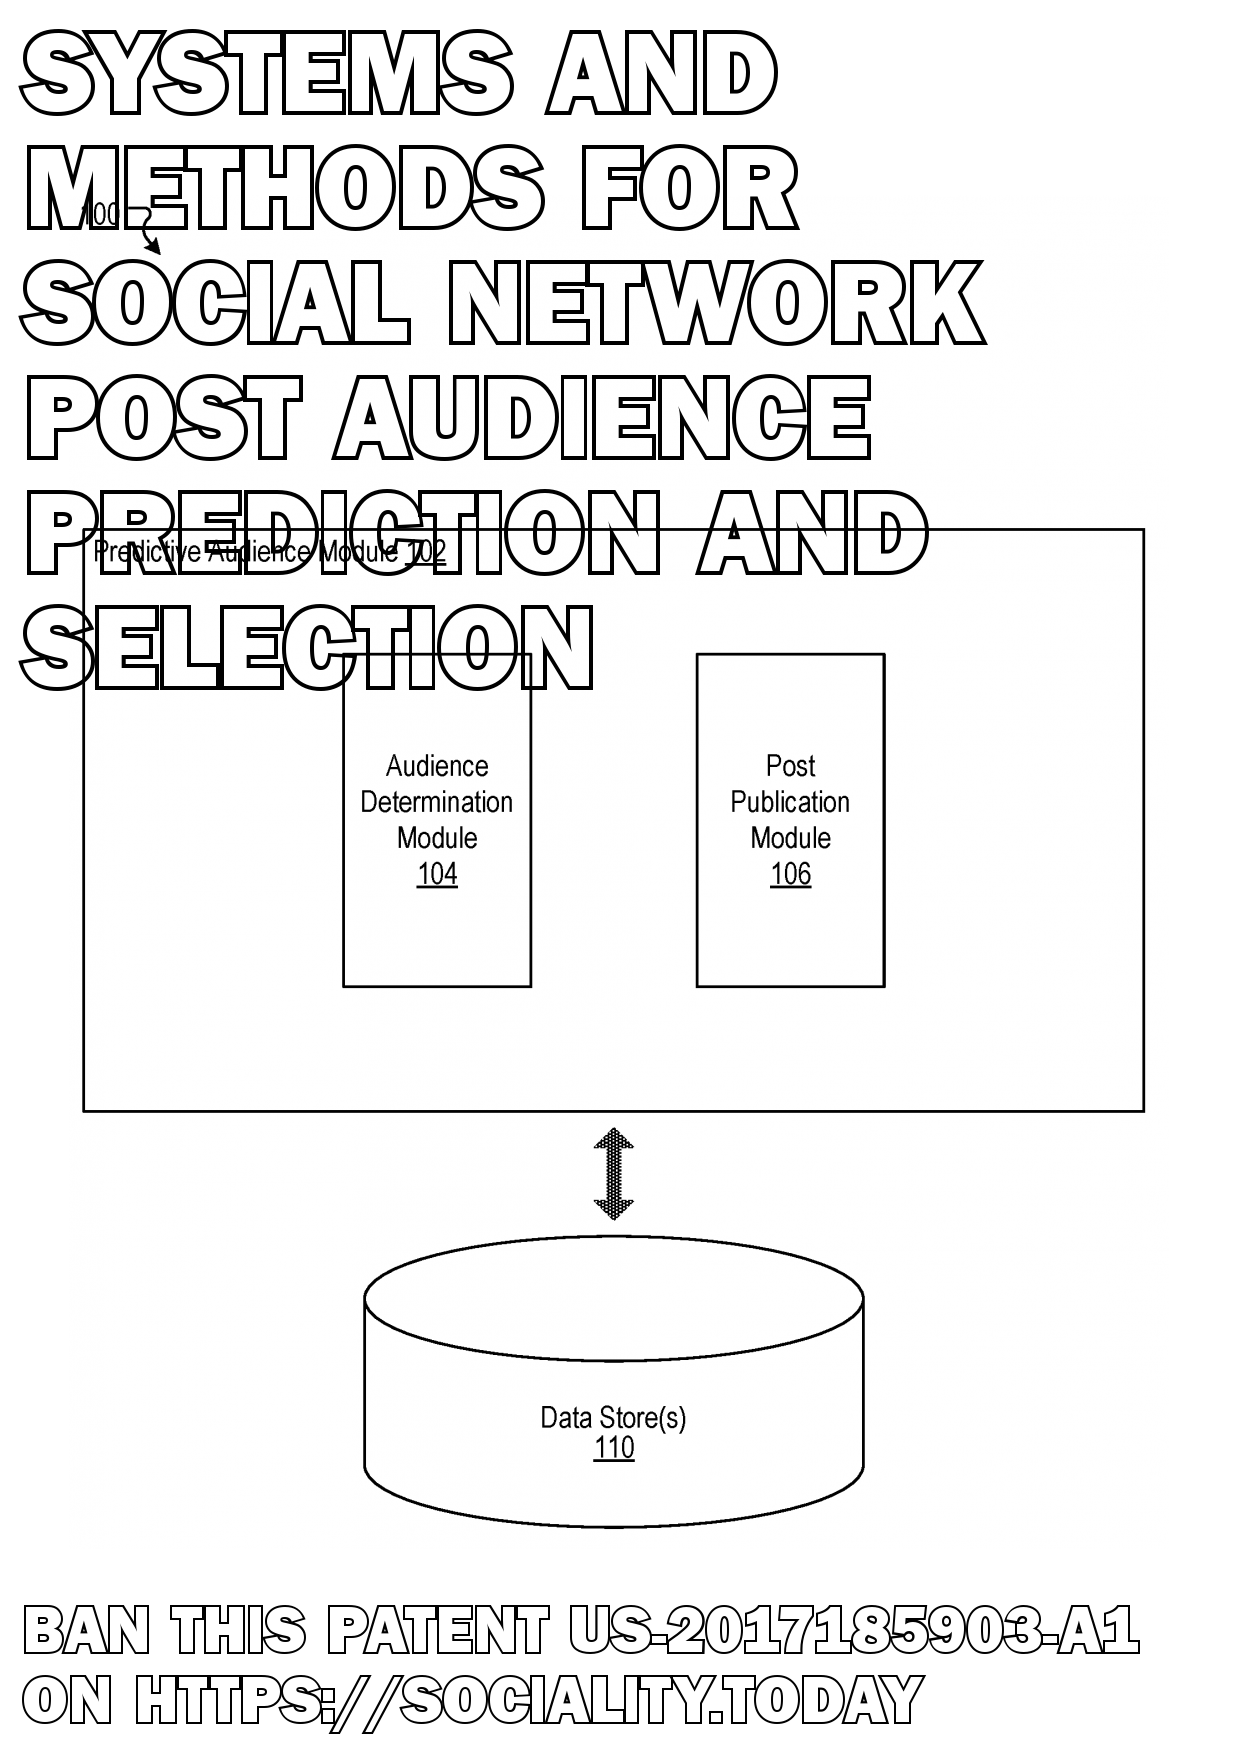 Systems and methods for social network post audience prediction and selection  - US-2017185903-A1